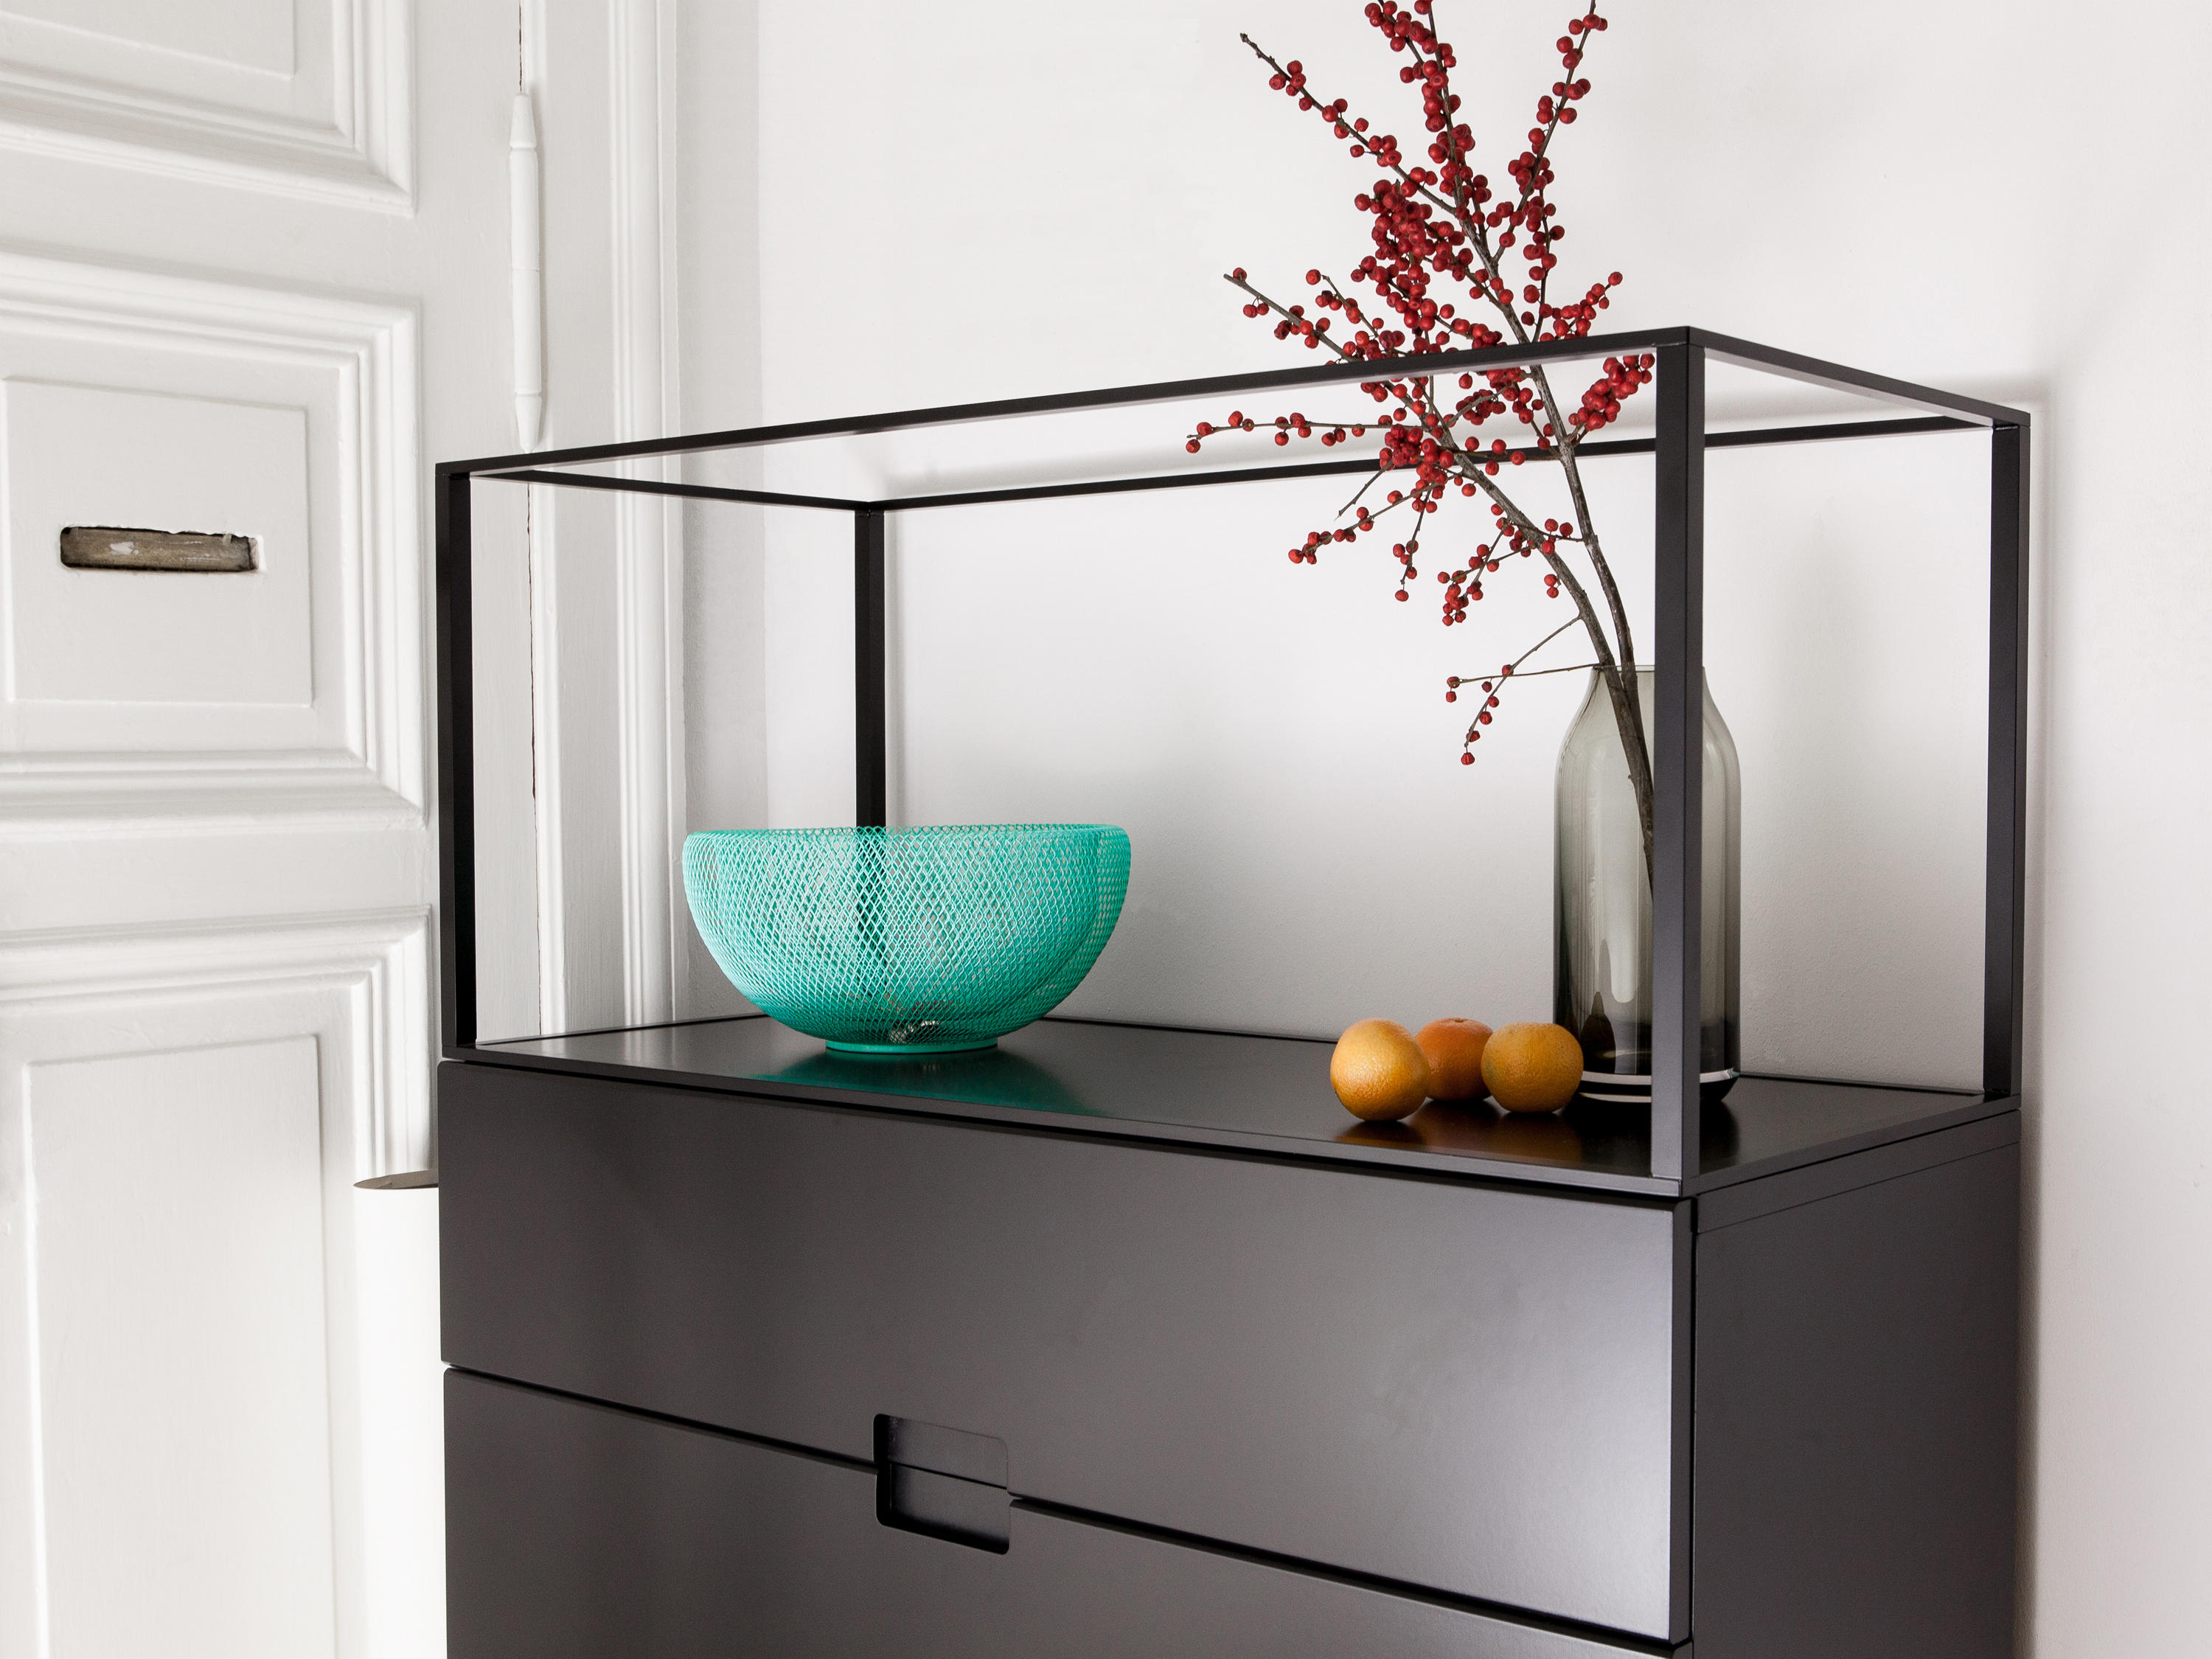 fischer shelving from objekte unserer tage architonic. Black Bedroom Furniture Sets. Home Design Ideas